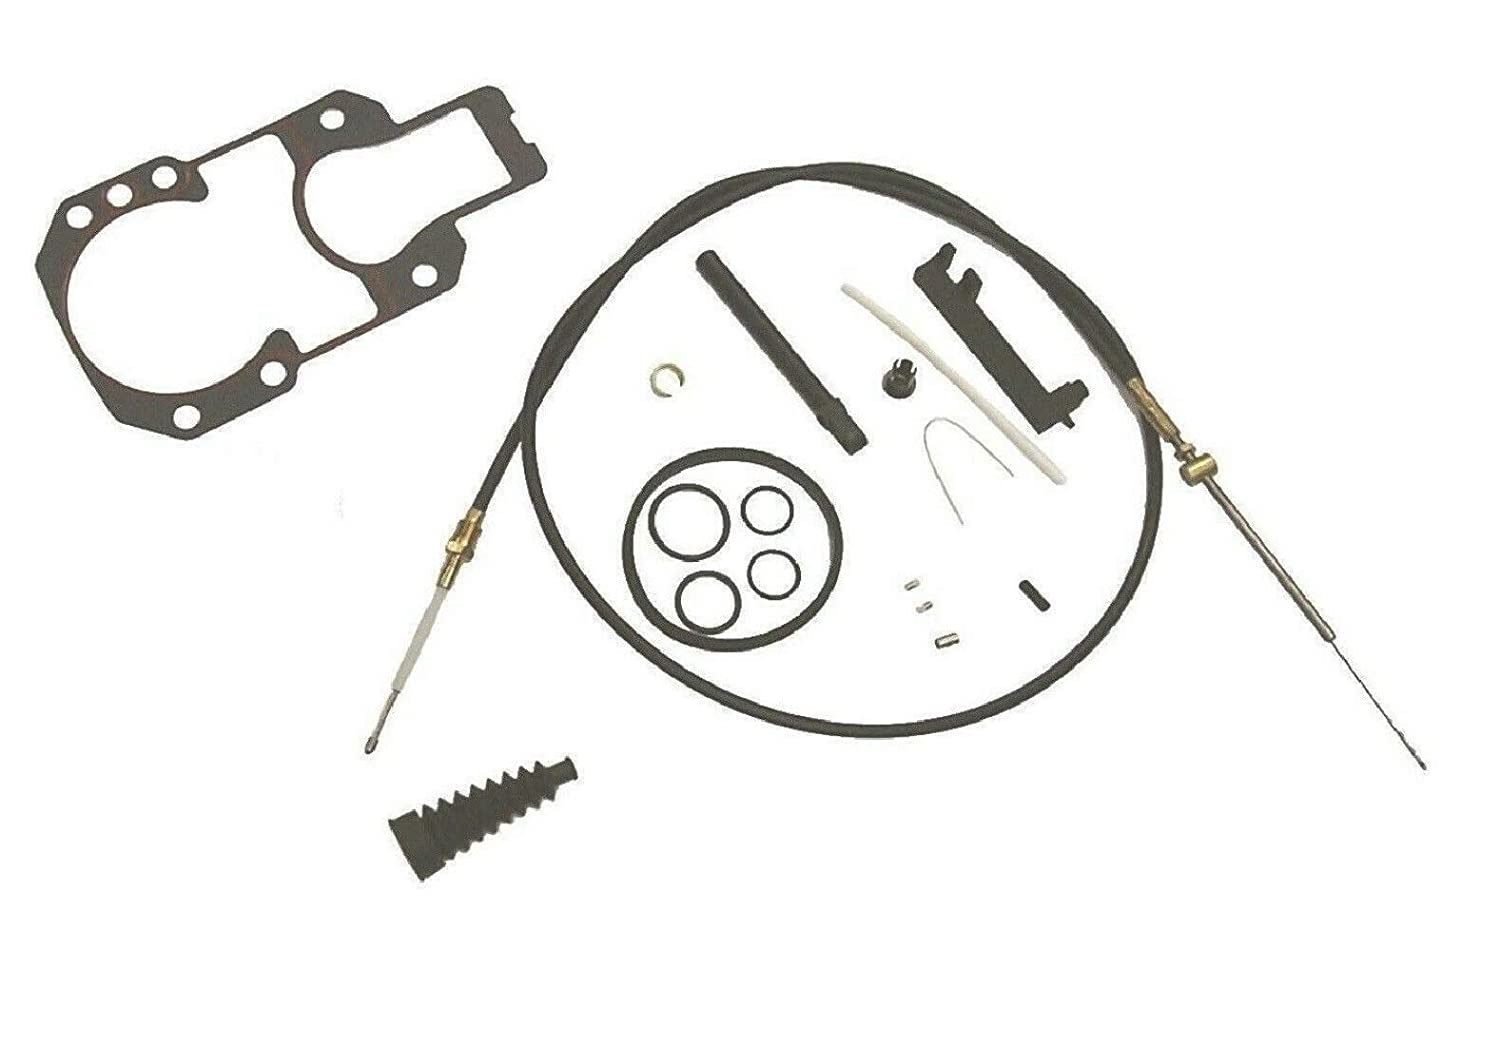 Shift Cable Kit with Bellows Gasket Set for Mercruiser Alpha One /& Alpha One Gen II 1983 Present with AFT Install Cables Replaces 18-2603 18-2190 Read Product Description for Exact Applications